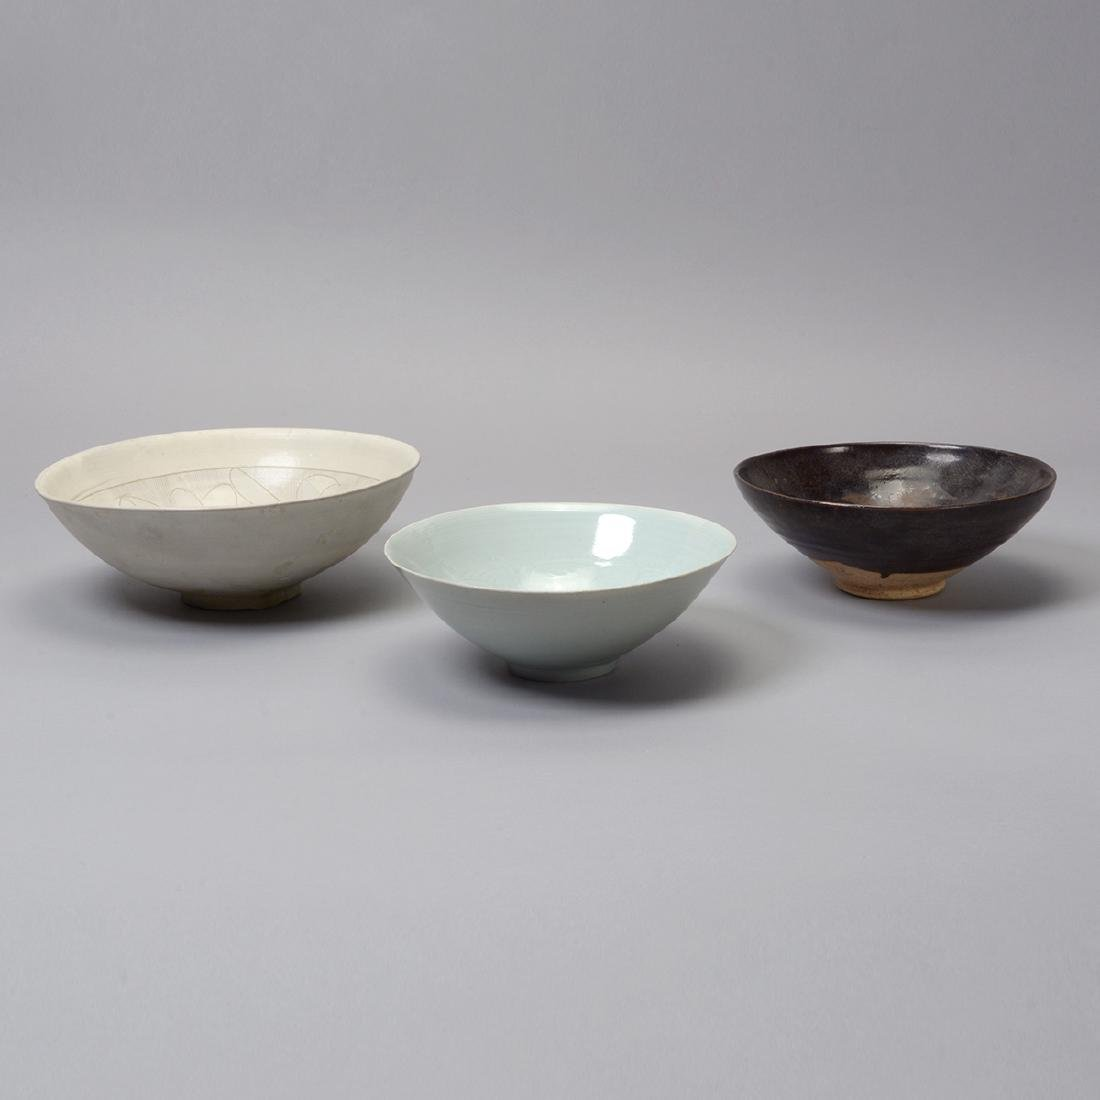 Three Glazed Ceramic Deep Bowls, Song Dynasty